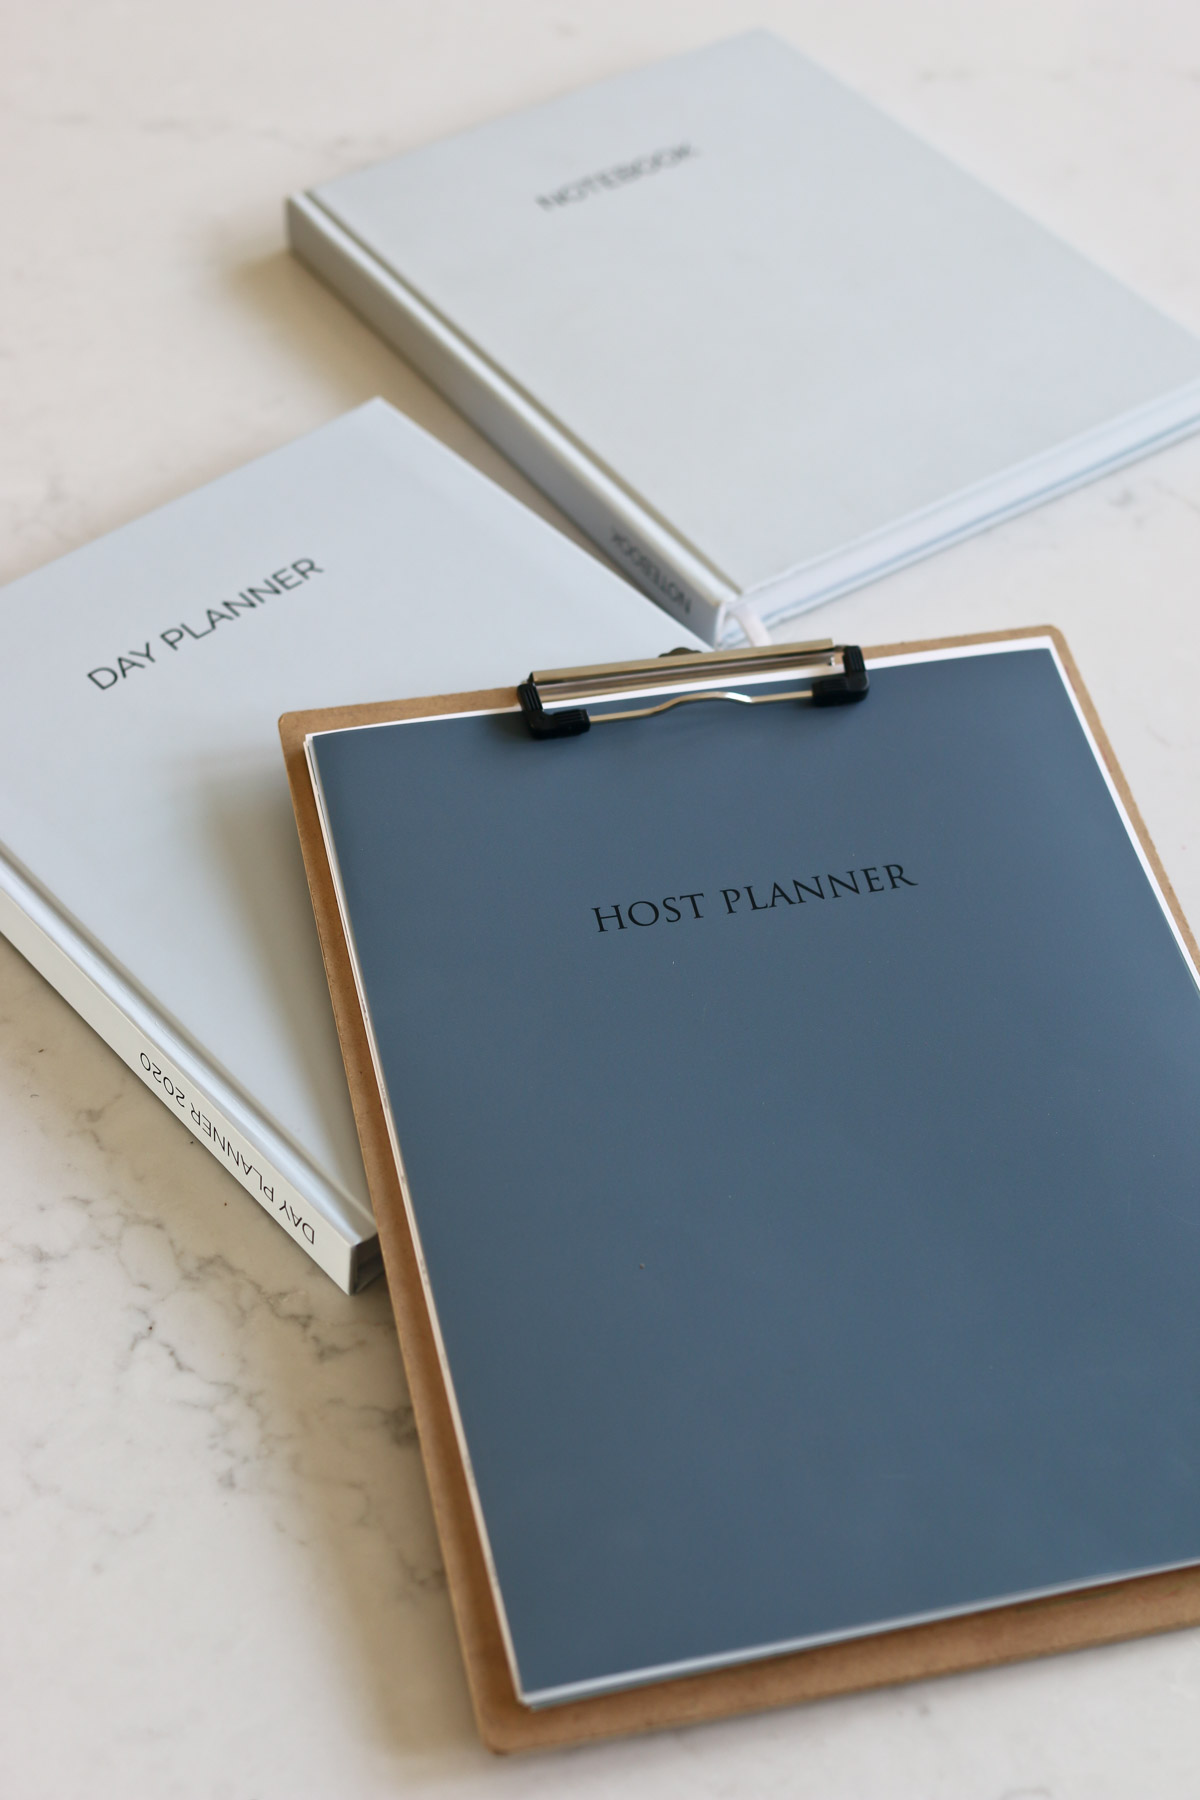 Host Planner pages attached to a clipboard